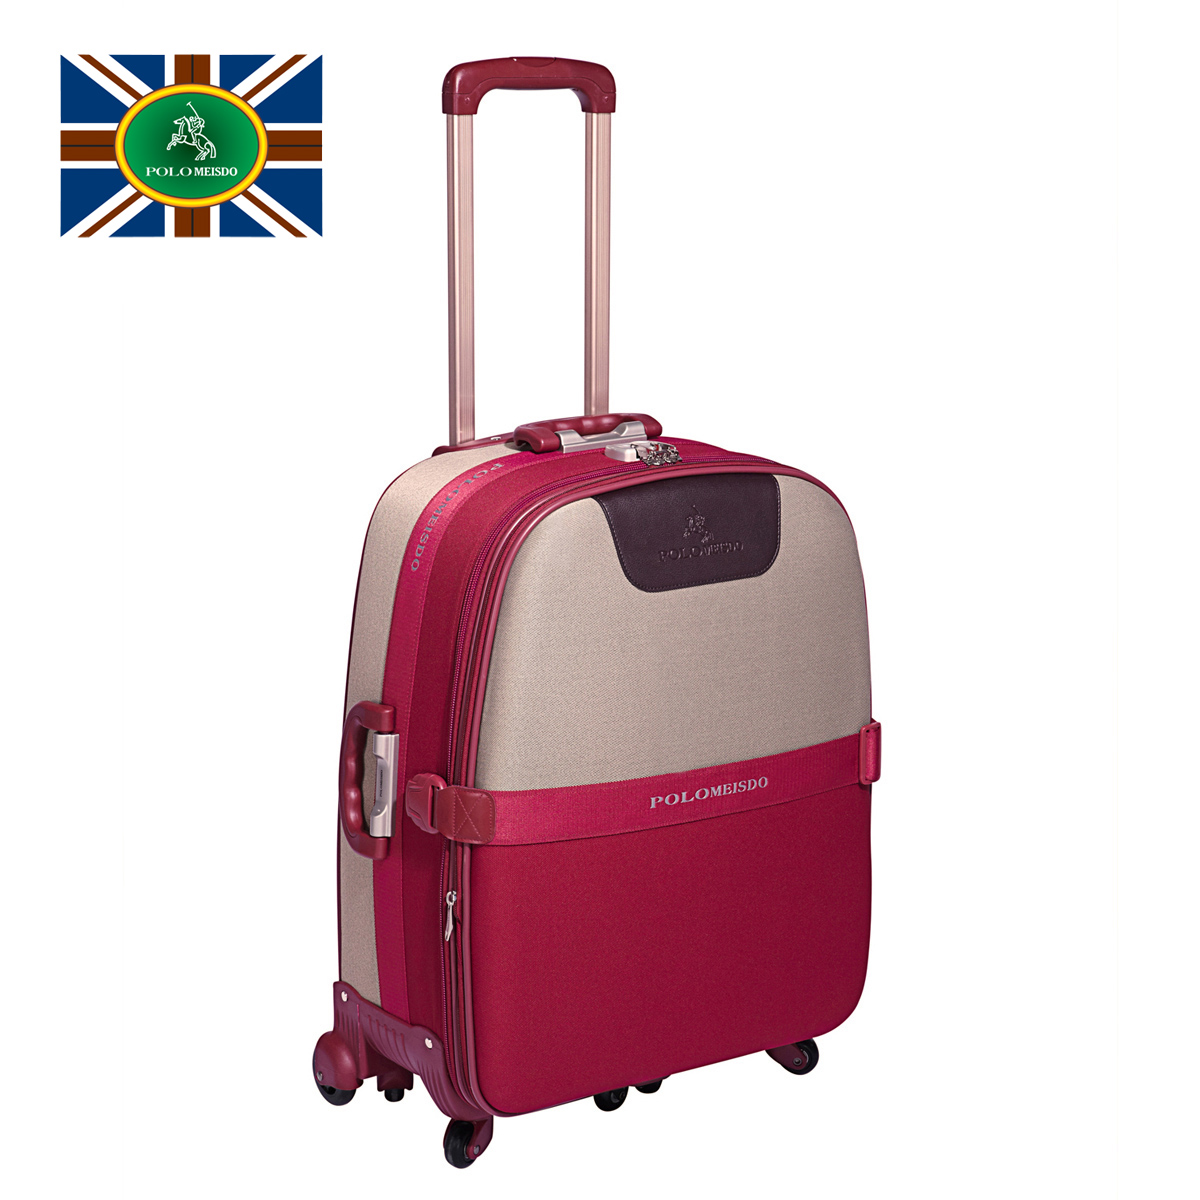 Polo paul universal wheels trolley luggage travel bag vintage 881680 - Volvo Co., Ltd. Shenzhen store